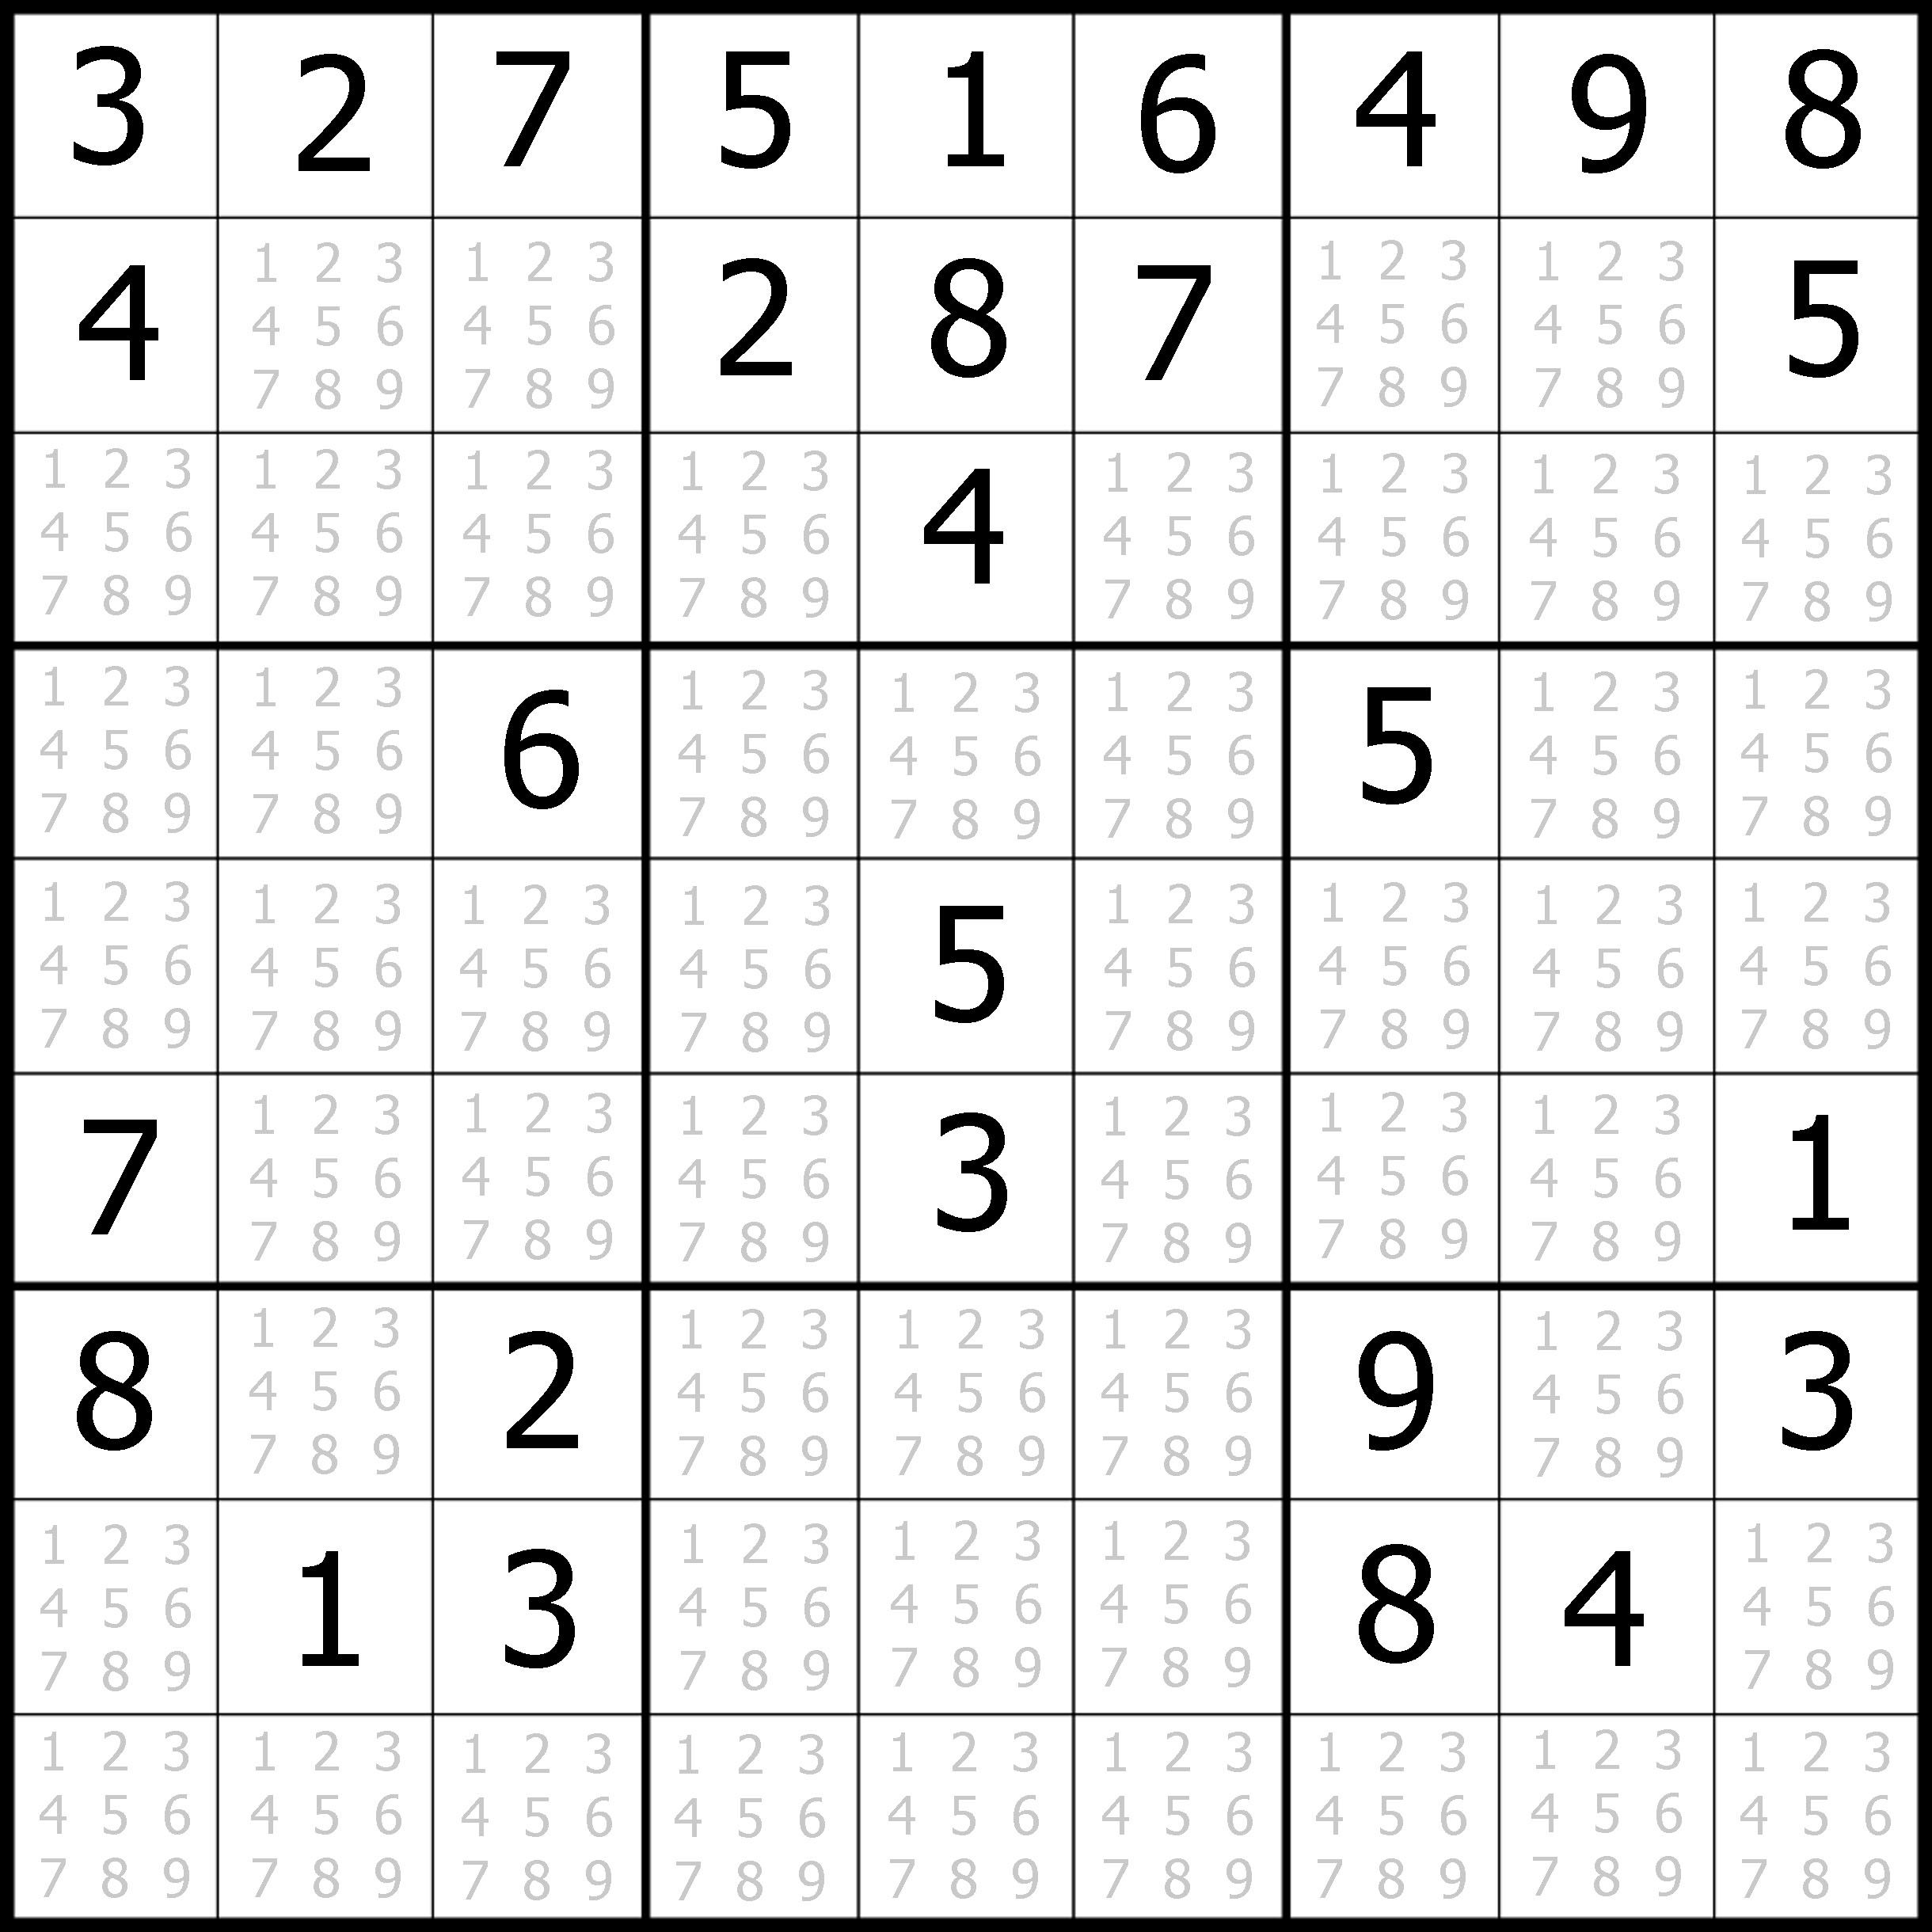 image relating to 16 Square Sudoku Printable named Sudoku Printable Cost-free, Medium, Printable Sudoku Puzzle #1